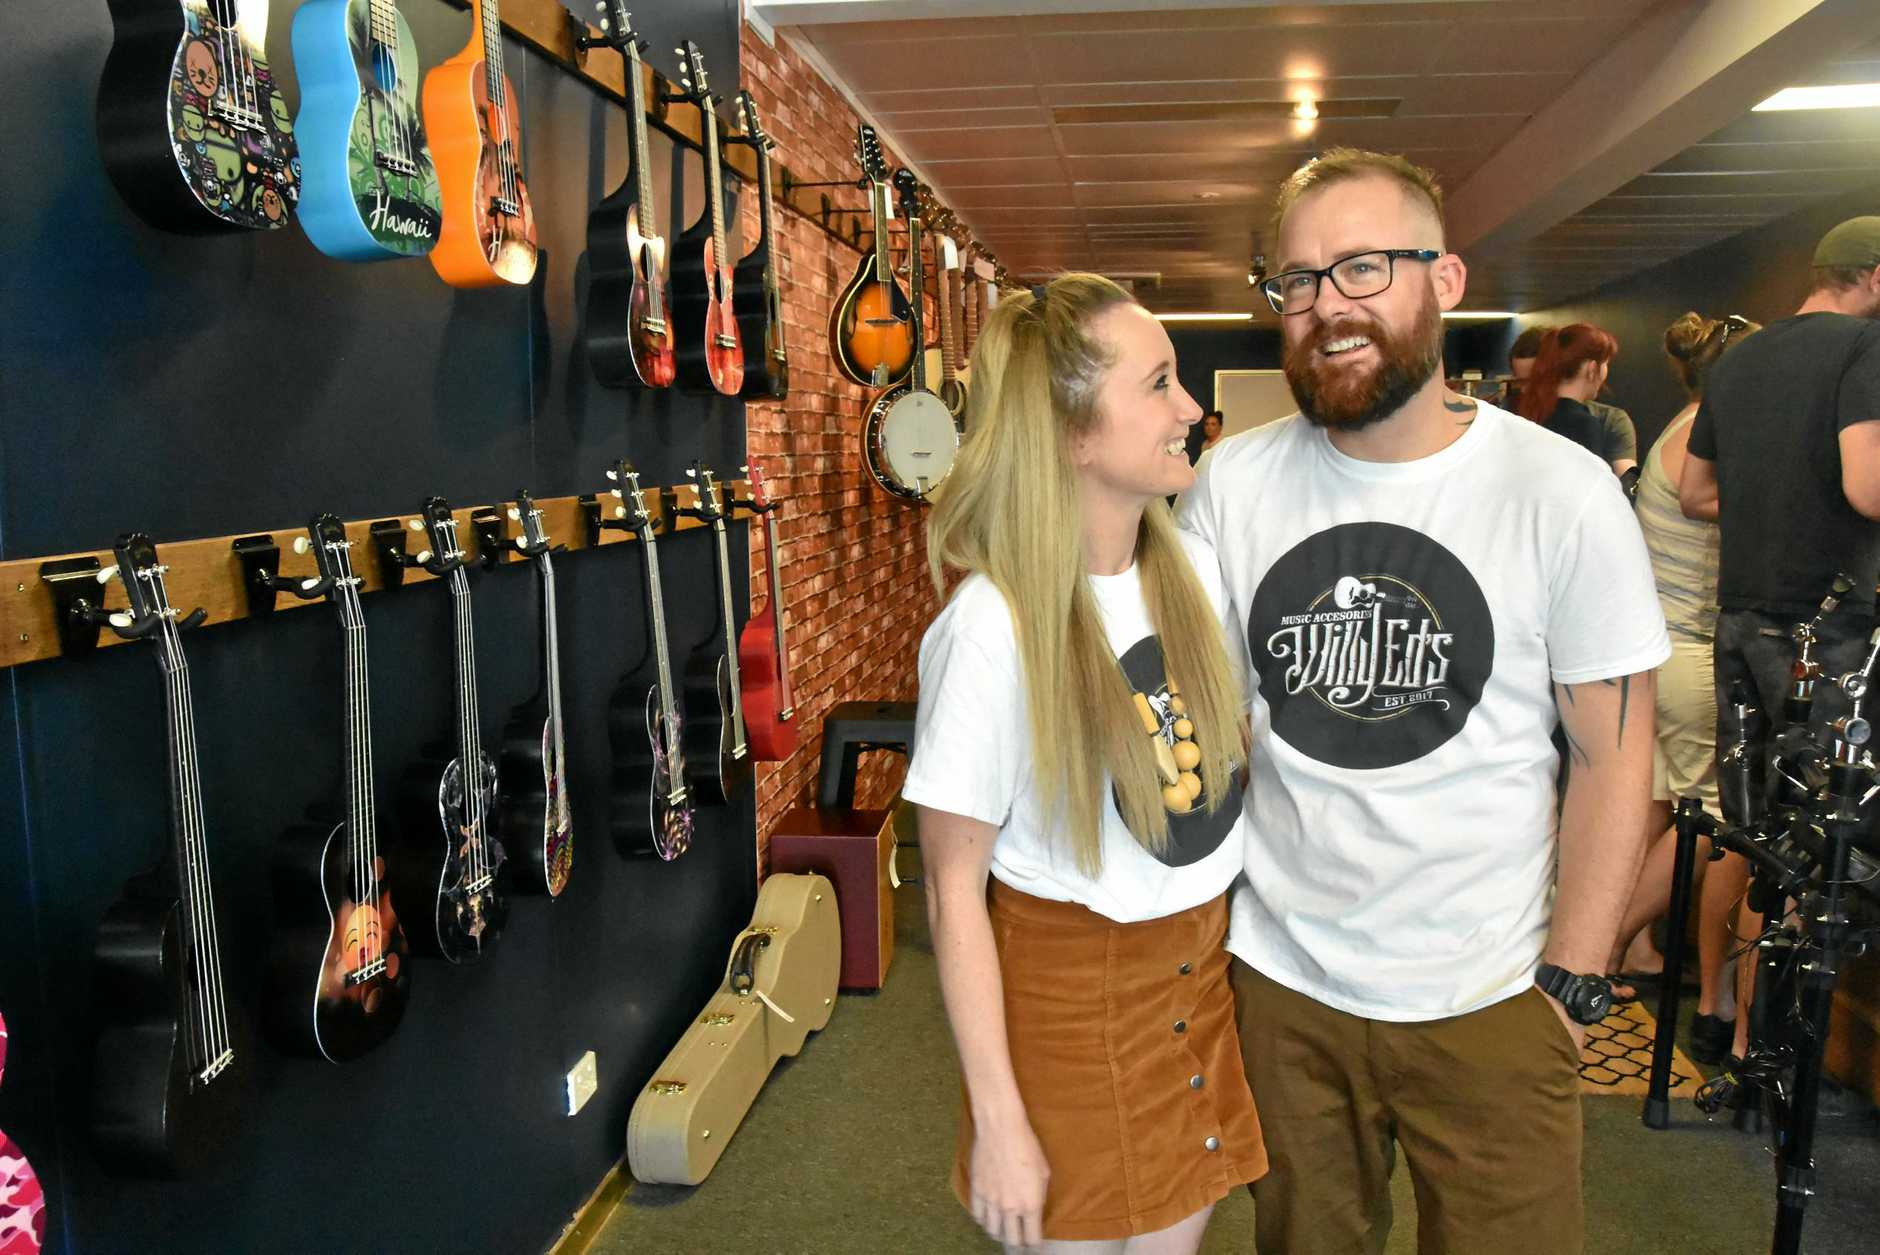 Gladstone parents Renee and Will Rose opened Willy Eds Music on Toolooa St on September 2.